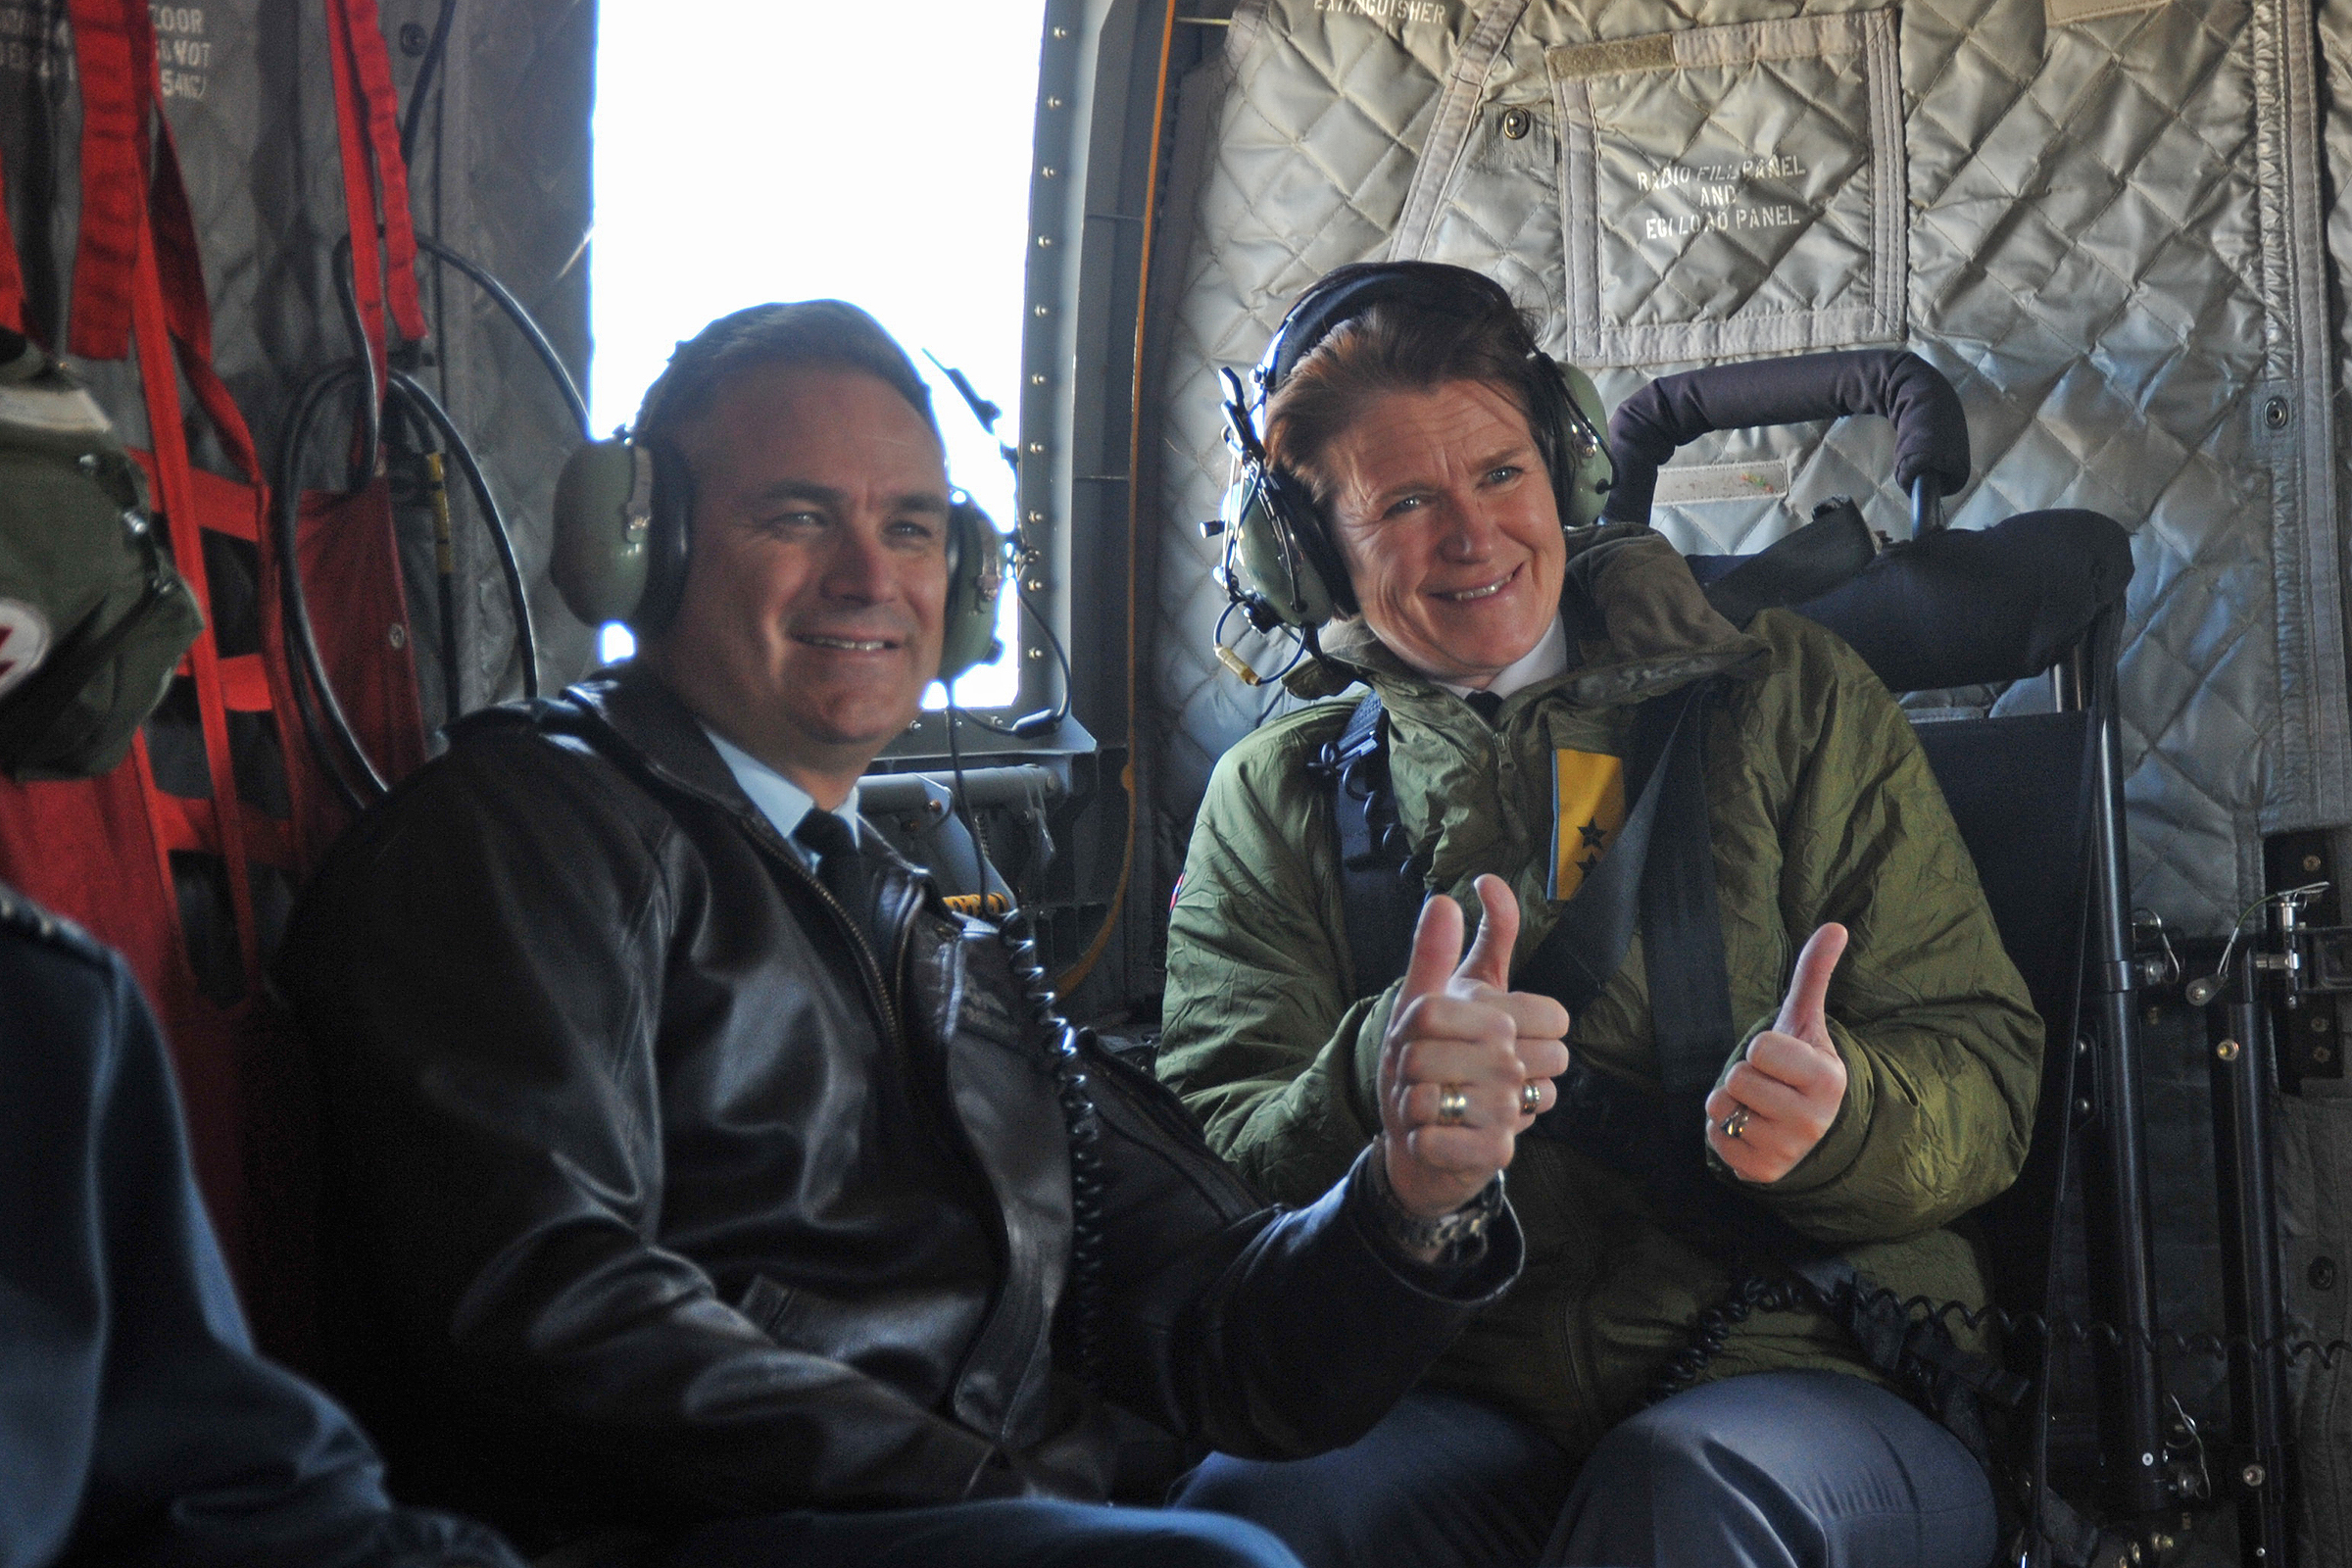 On October 11, 2019, Major-General Blaise Frawley (left), deputy commander of the Royal Canadian Air Force, and Major-General Tonje Skinnarland, chief of the Royal Norwegian Air Force, travel on board a CH-147F Chinook to three landmarks in the history of the Royal Norwegian Air Force in Canada, on the occasion of the 75th anniversary of the Royal Norwegian Air Force. PHOTO: Lieutenant Nora Amrane